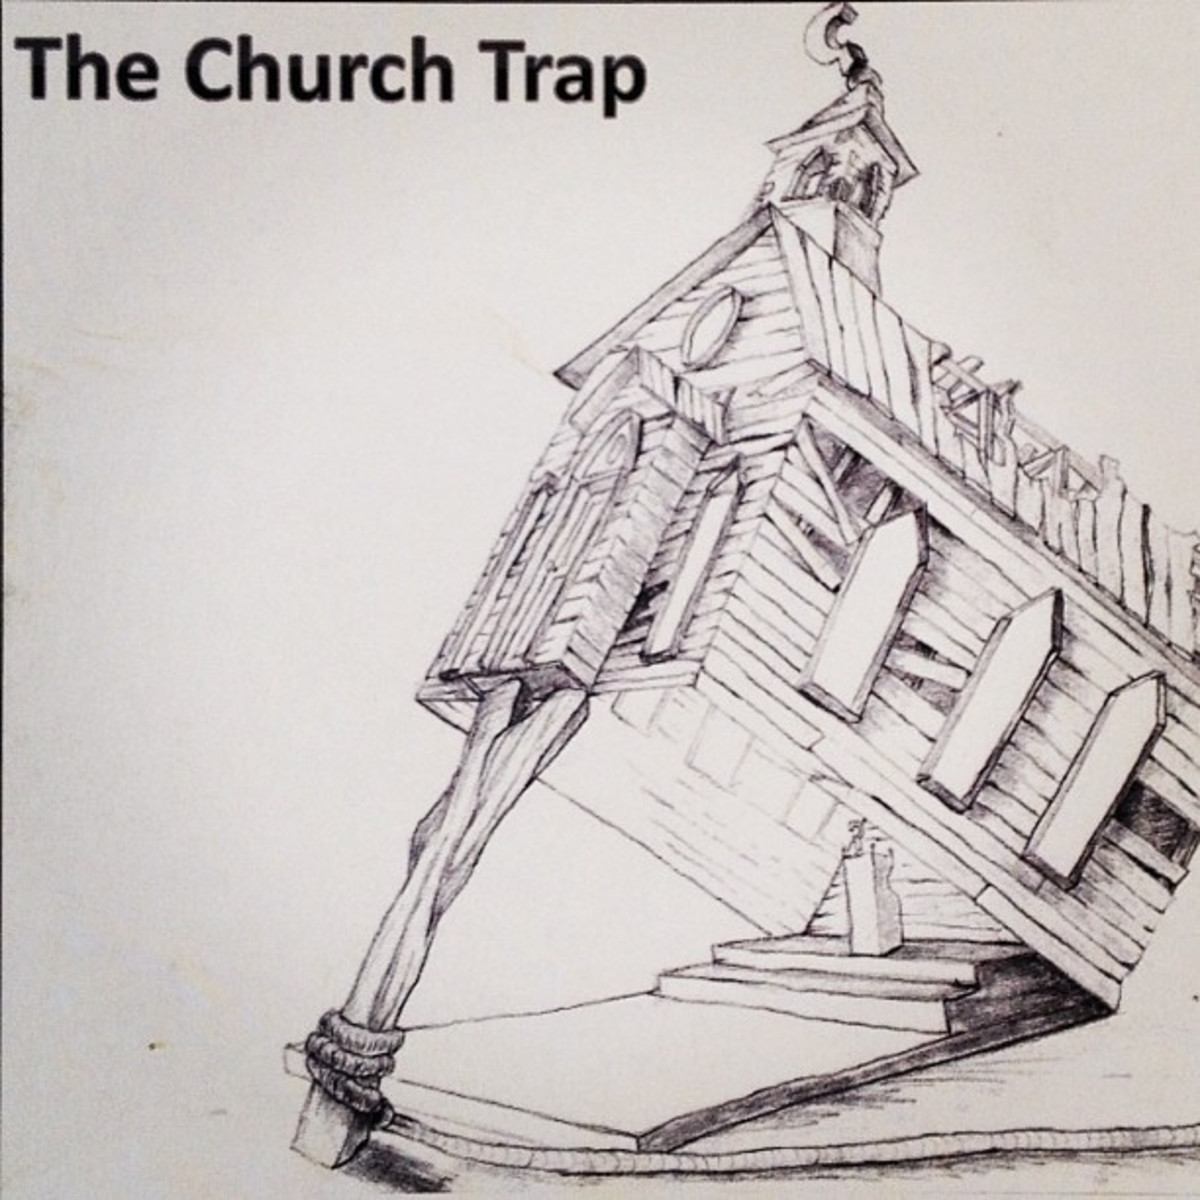 Going to Church is a Religious Trap